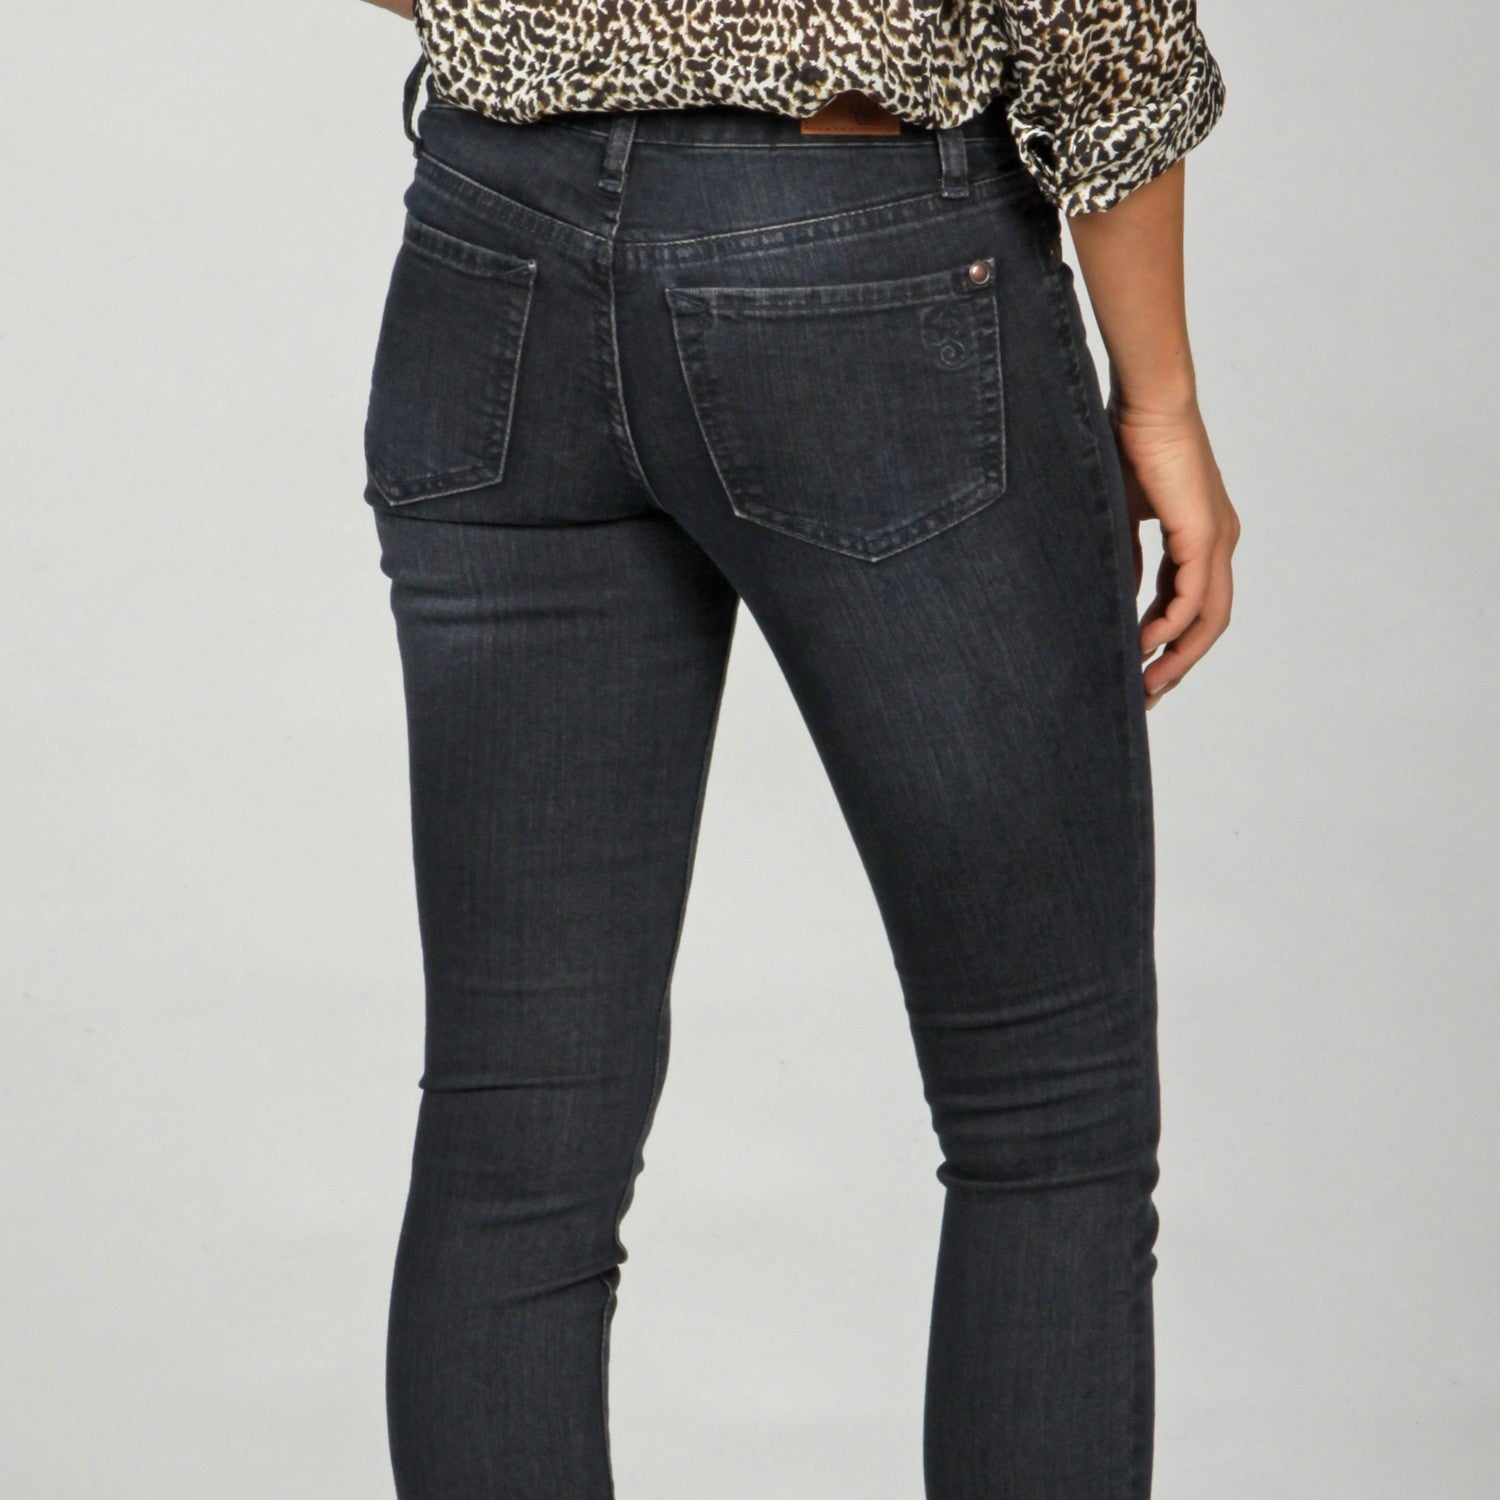 18f9a43f8dd45 Shop Jessica Simpson Junior's Kiss Me Jeggings - Free Shipping Today -  Overstock.com - 6237738